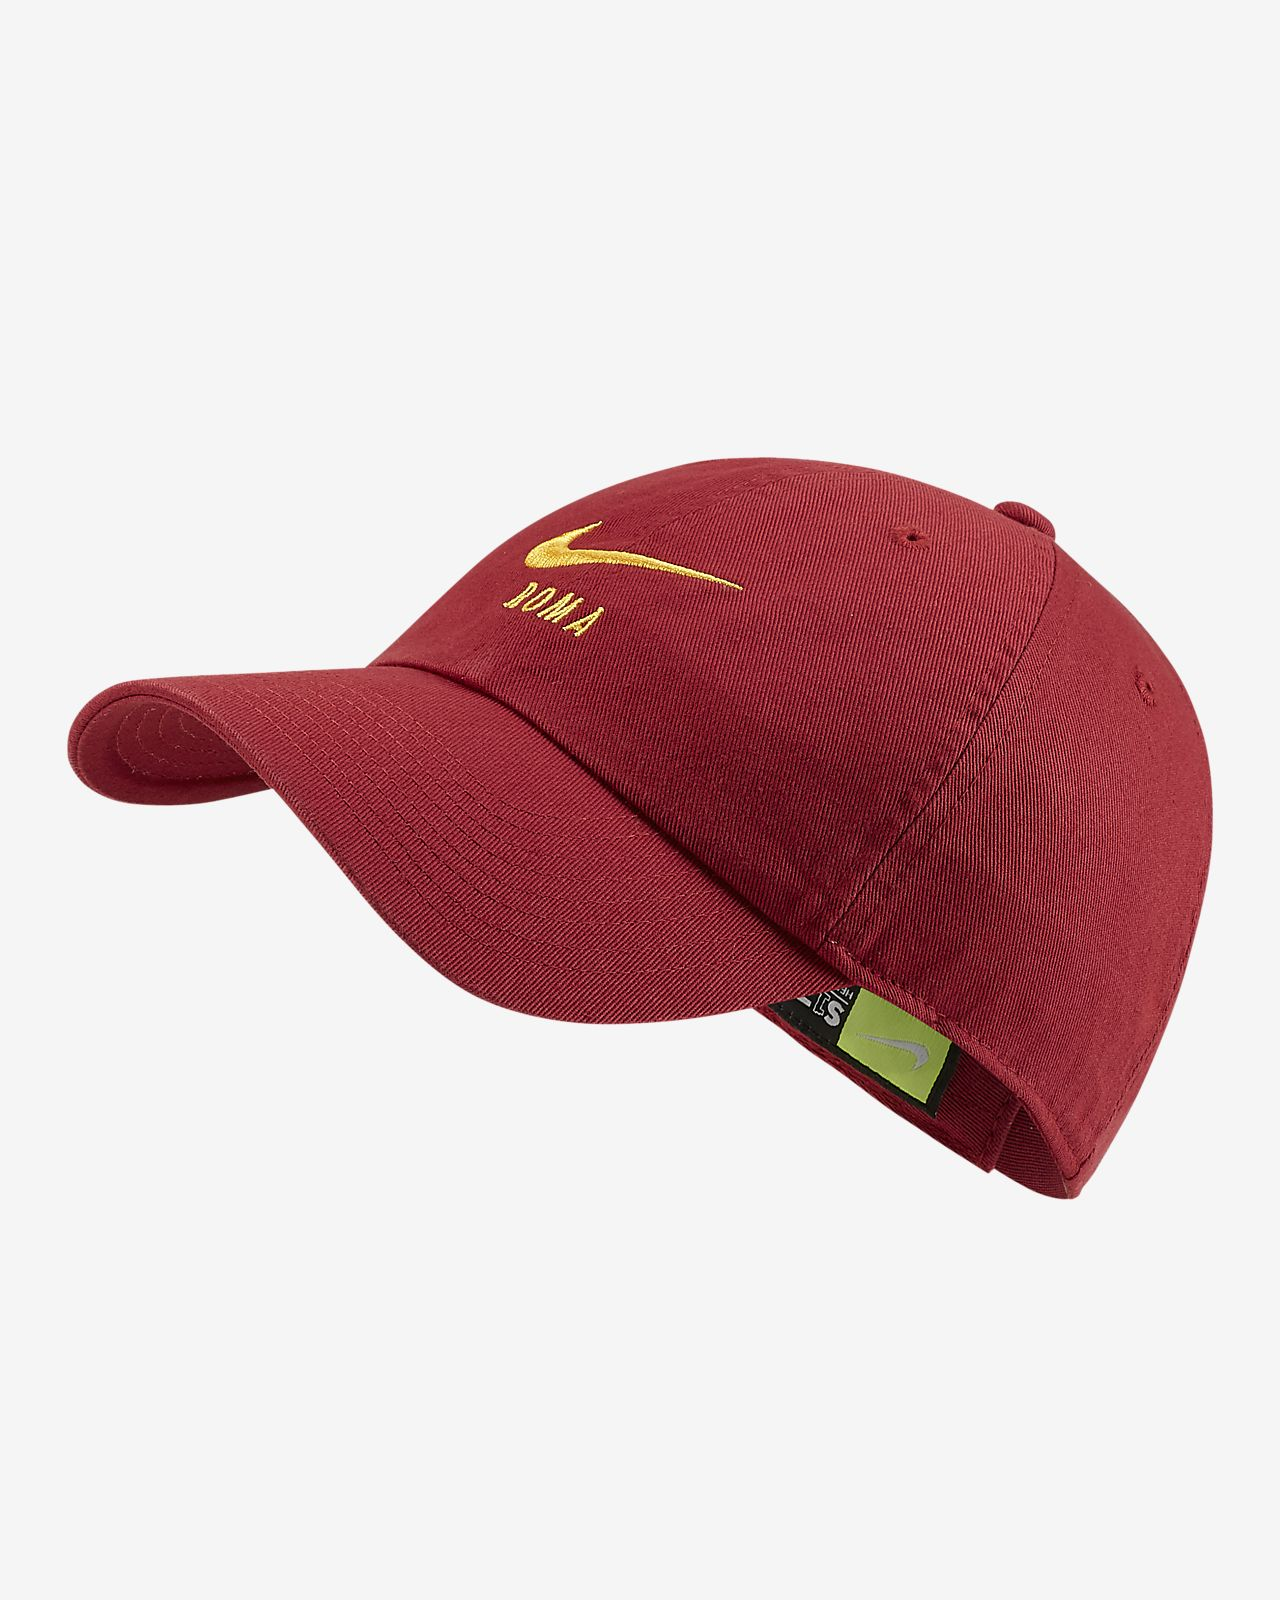 Casquette réglable A.S. Roma Heritage86